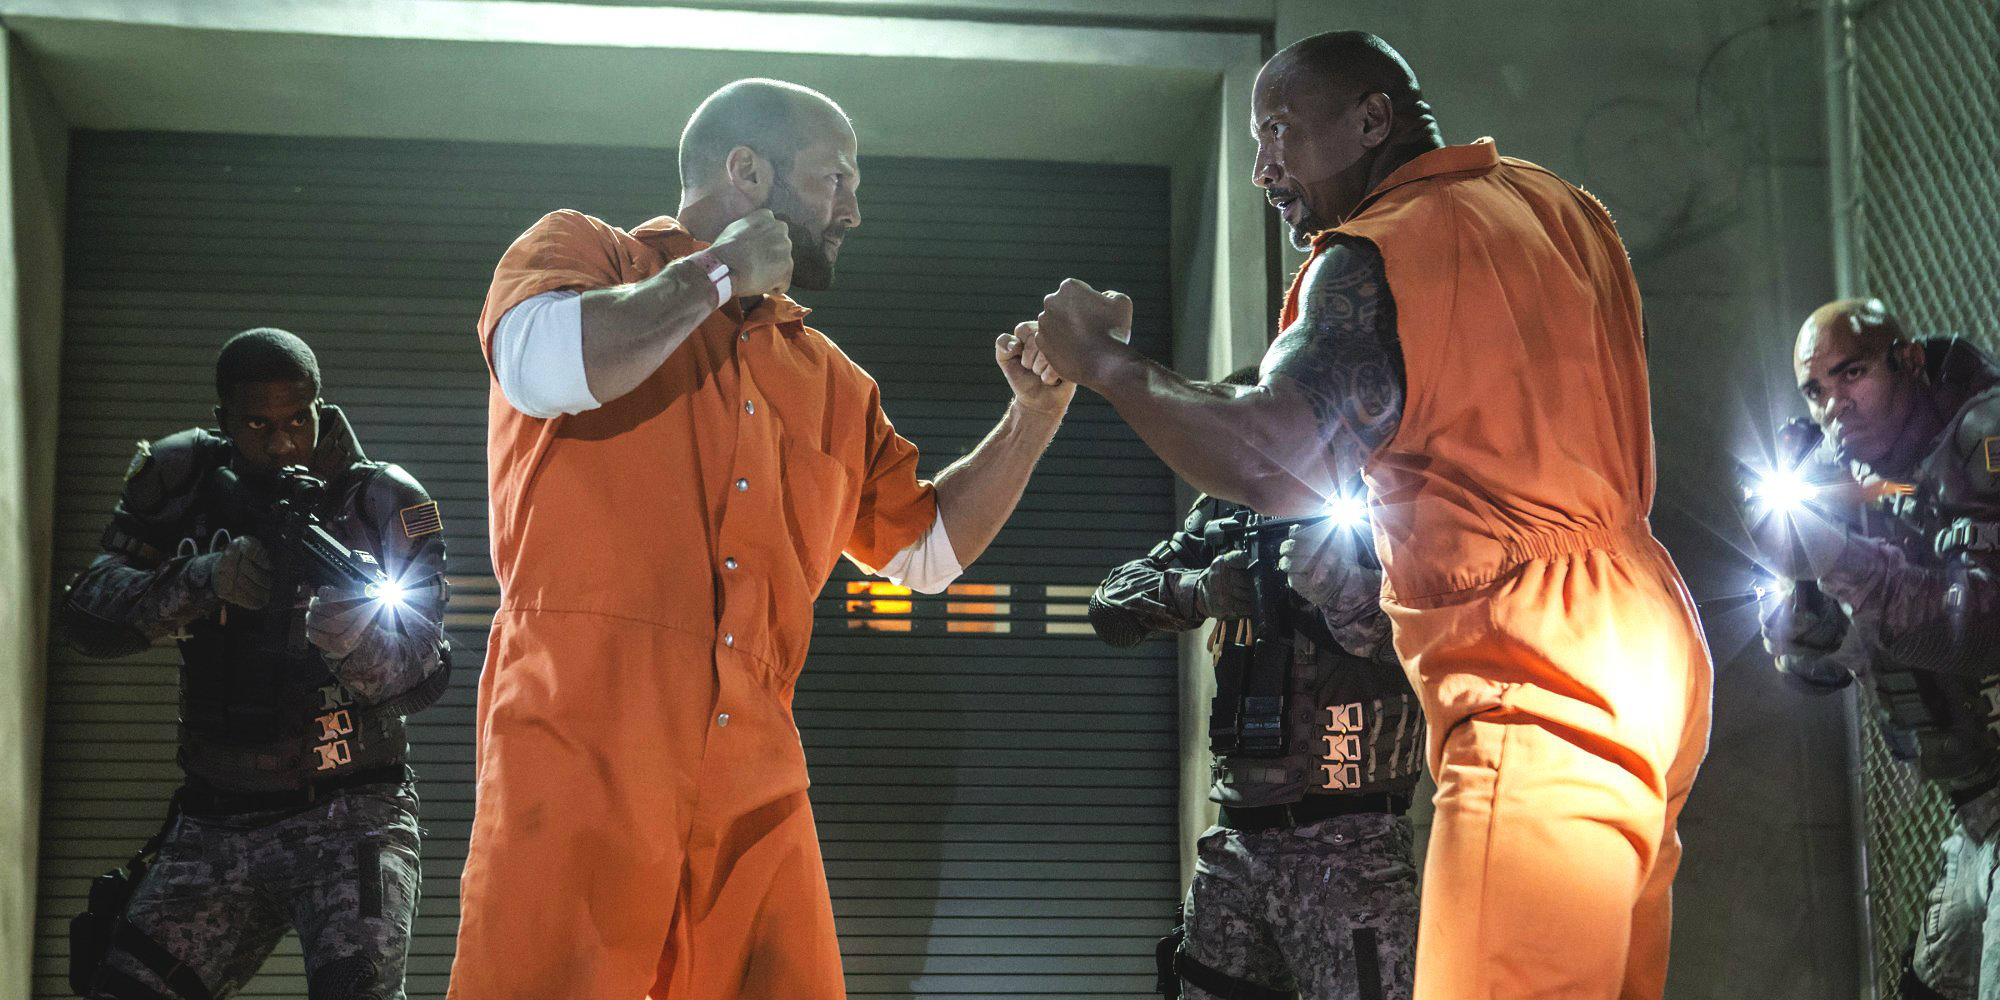 The Fate of the Furious - Jason Statham and Dwayne Johnson